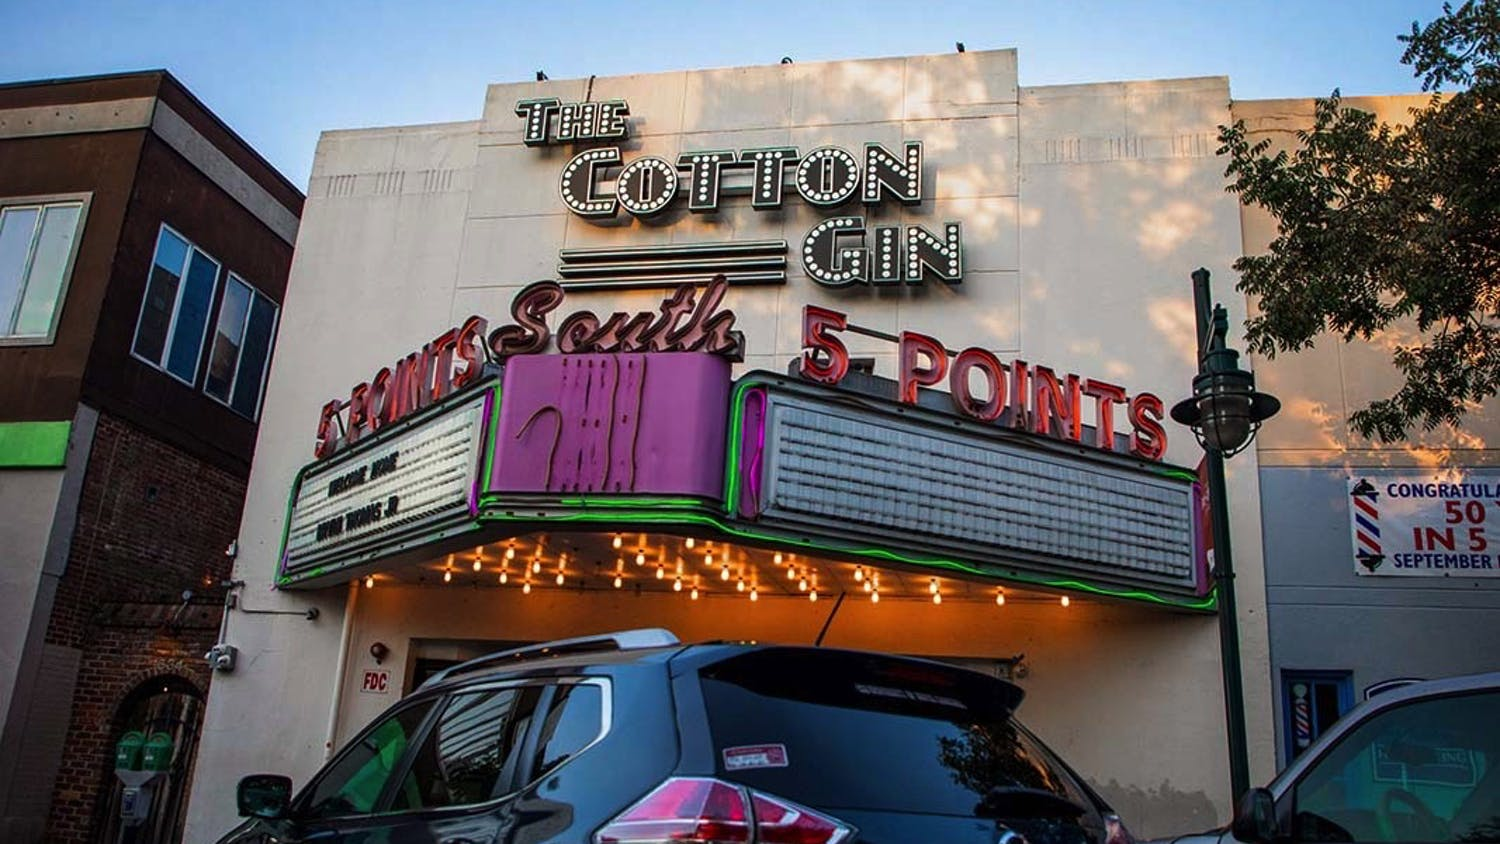 The street view of The Cotton Gin, in the early evening hours when it would normally be bustling with college students. The Cotton Gin is one of several bars in Five Points that has experienced a shift in customer demographics after legislation passed that sought to limit underage drinking and general chaos in the area.